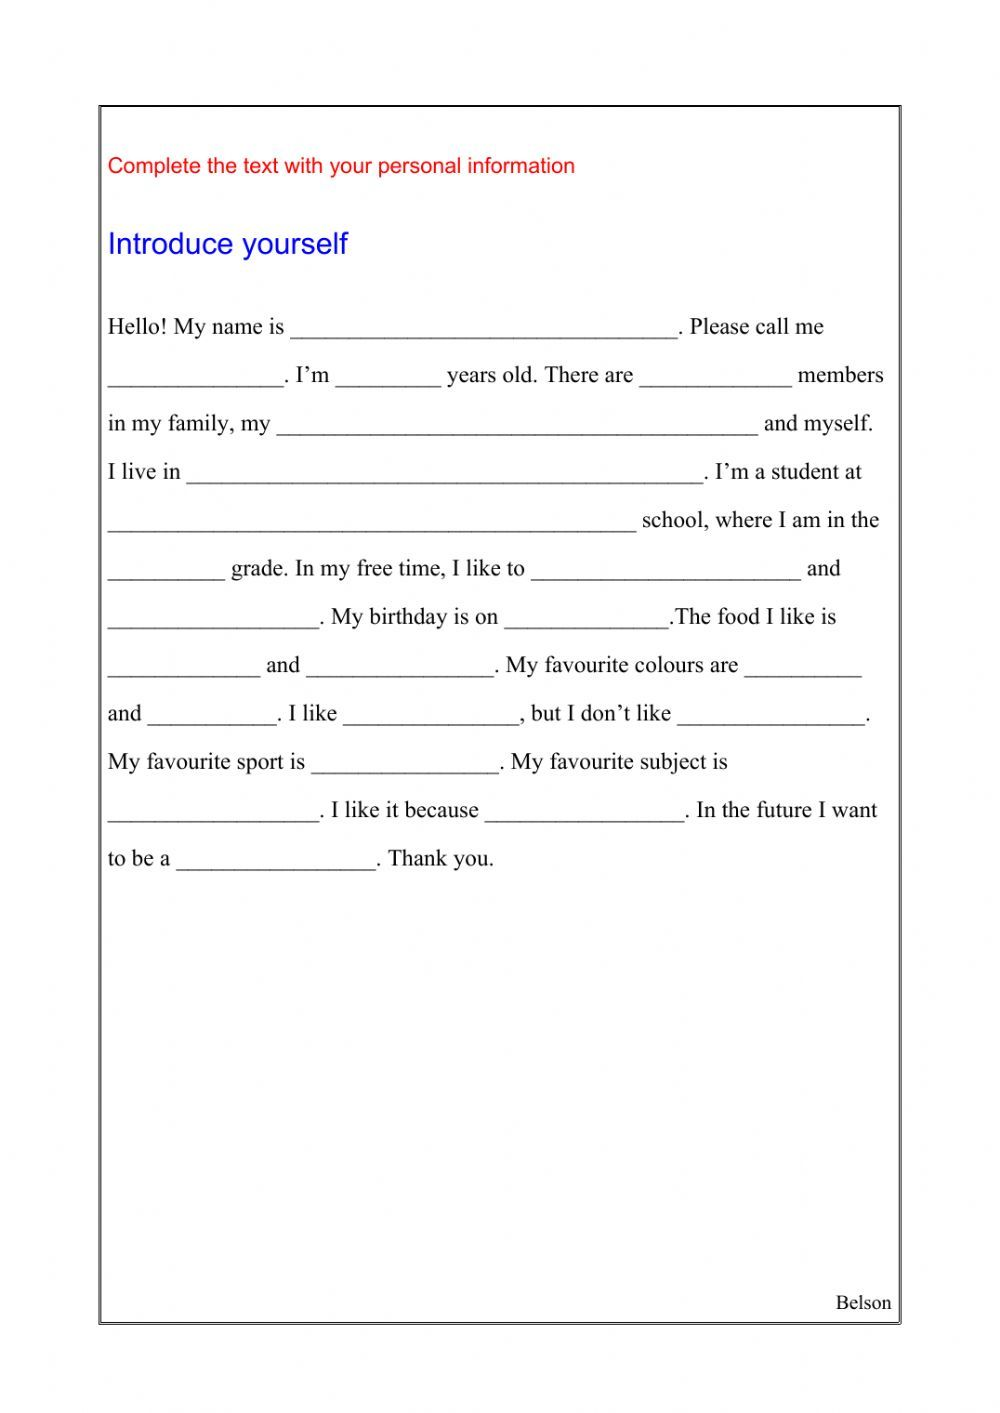 Introduce Yourself Interactive Worksheet How To Introduce Yourself English As A Second Language English As A Second Language Esl [ 1413 x 1000 Pixel ]